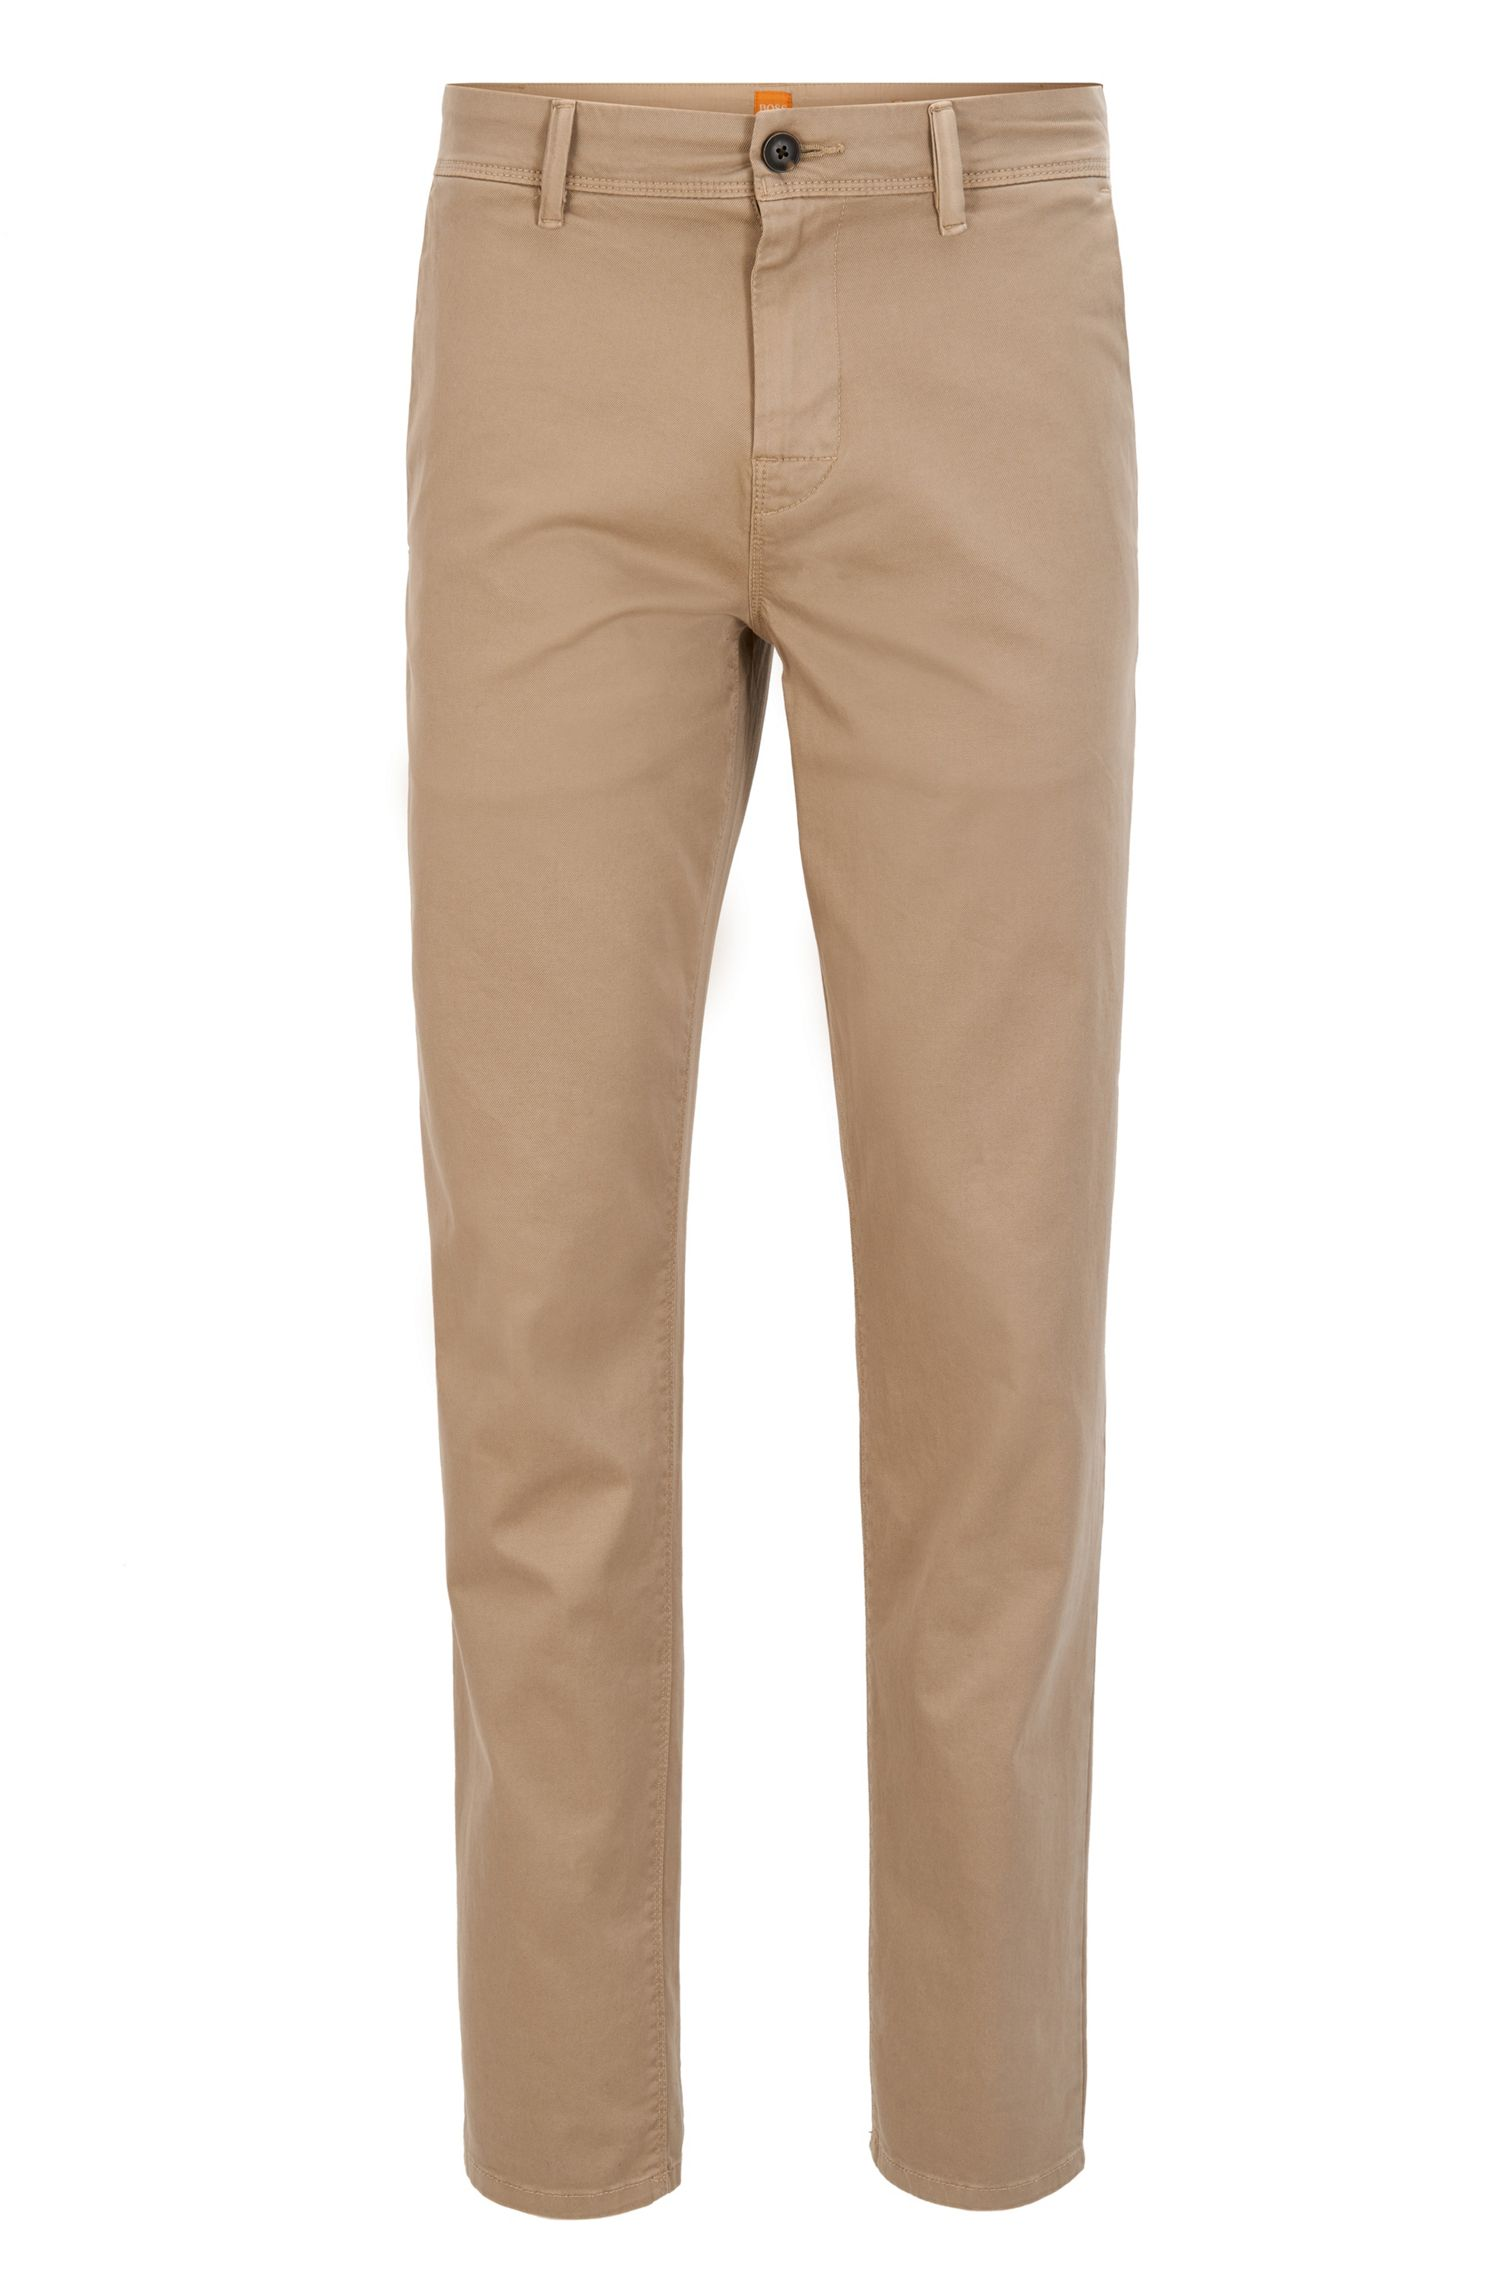 Stretch Cotton Chino Pants, Tapered Fit | Schino Tapered D, Beige